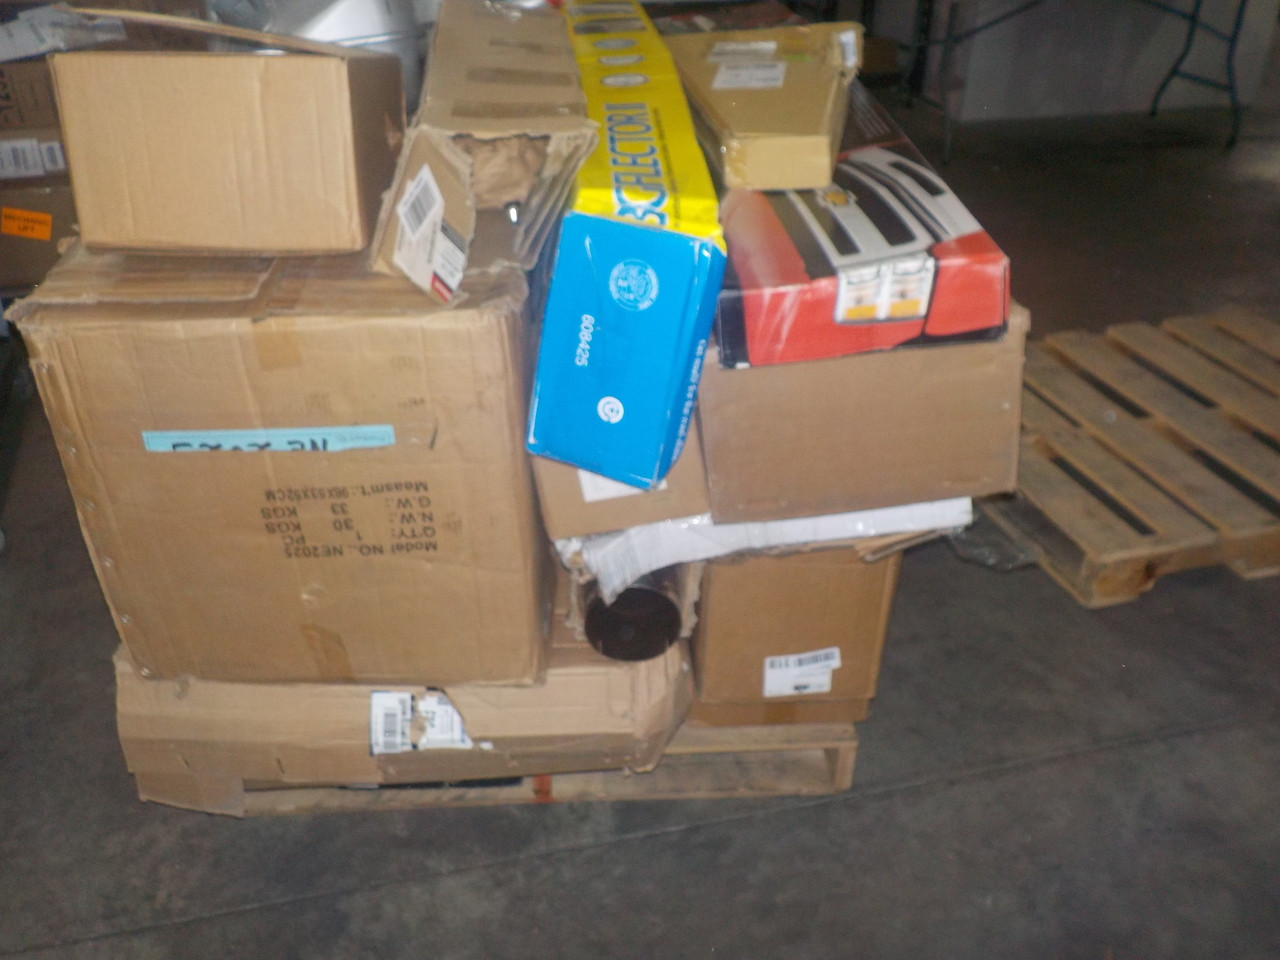 CLEARANCE: 1 Oversized Pallet #14025 - 23 units of Automotive Parts &  Accessories from Amazon ca - MSRP 4856$ - Returns